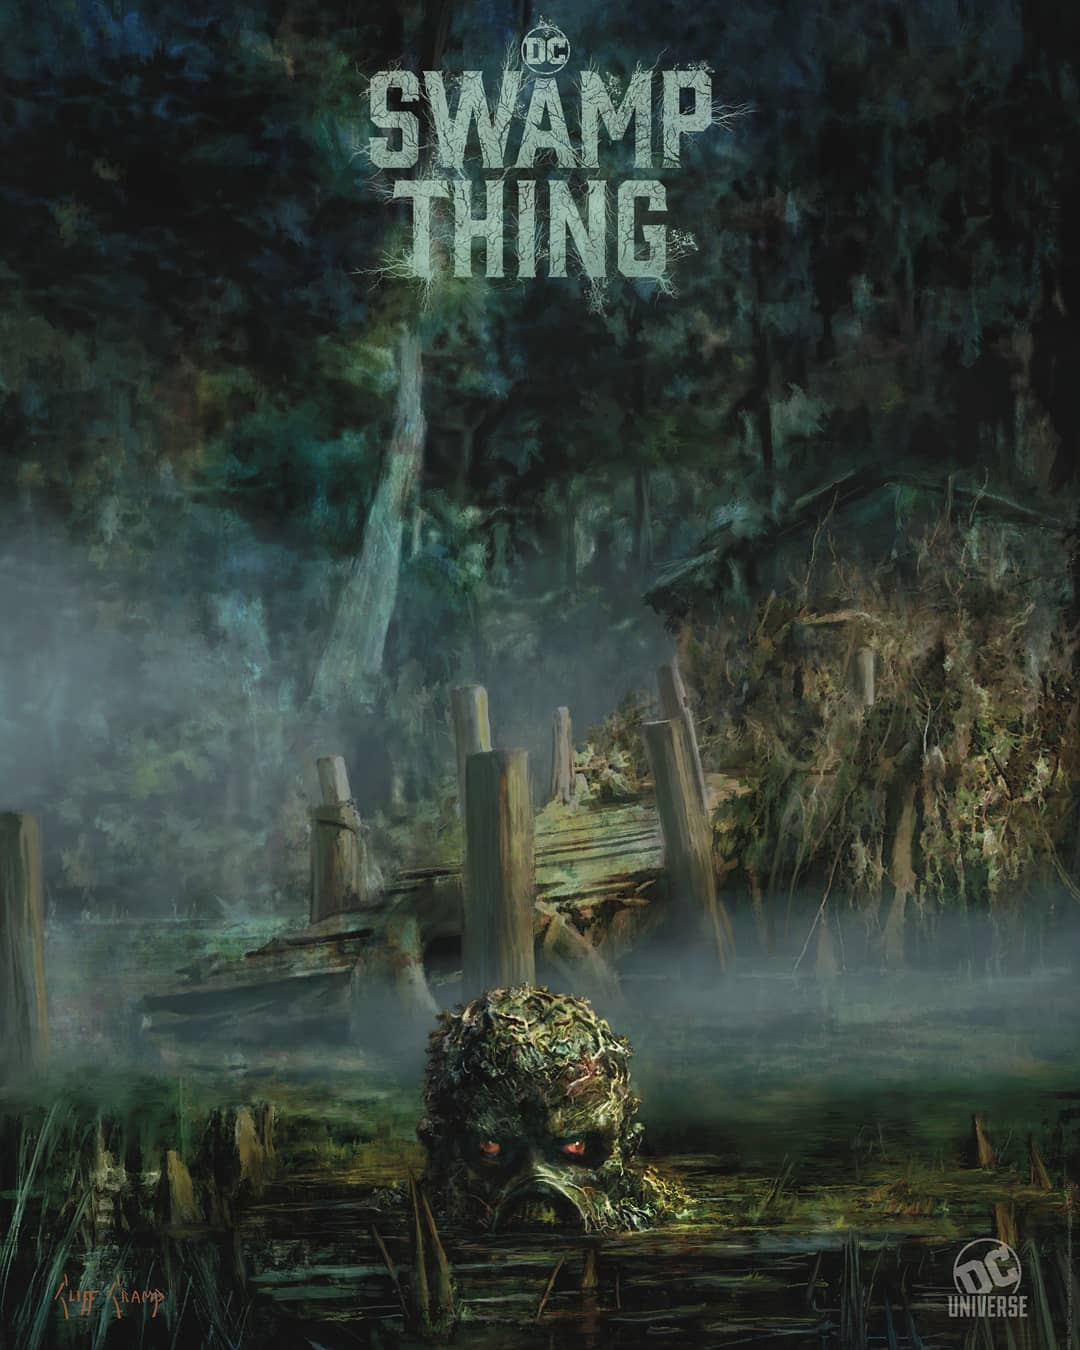 Free Comic Book Day San Diego: The Blot Says...: SDCC 2019 Exclusive Swamp Thing Poster